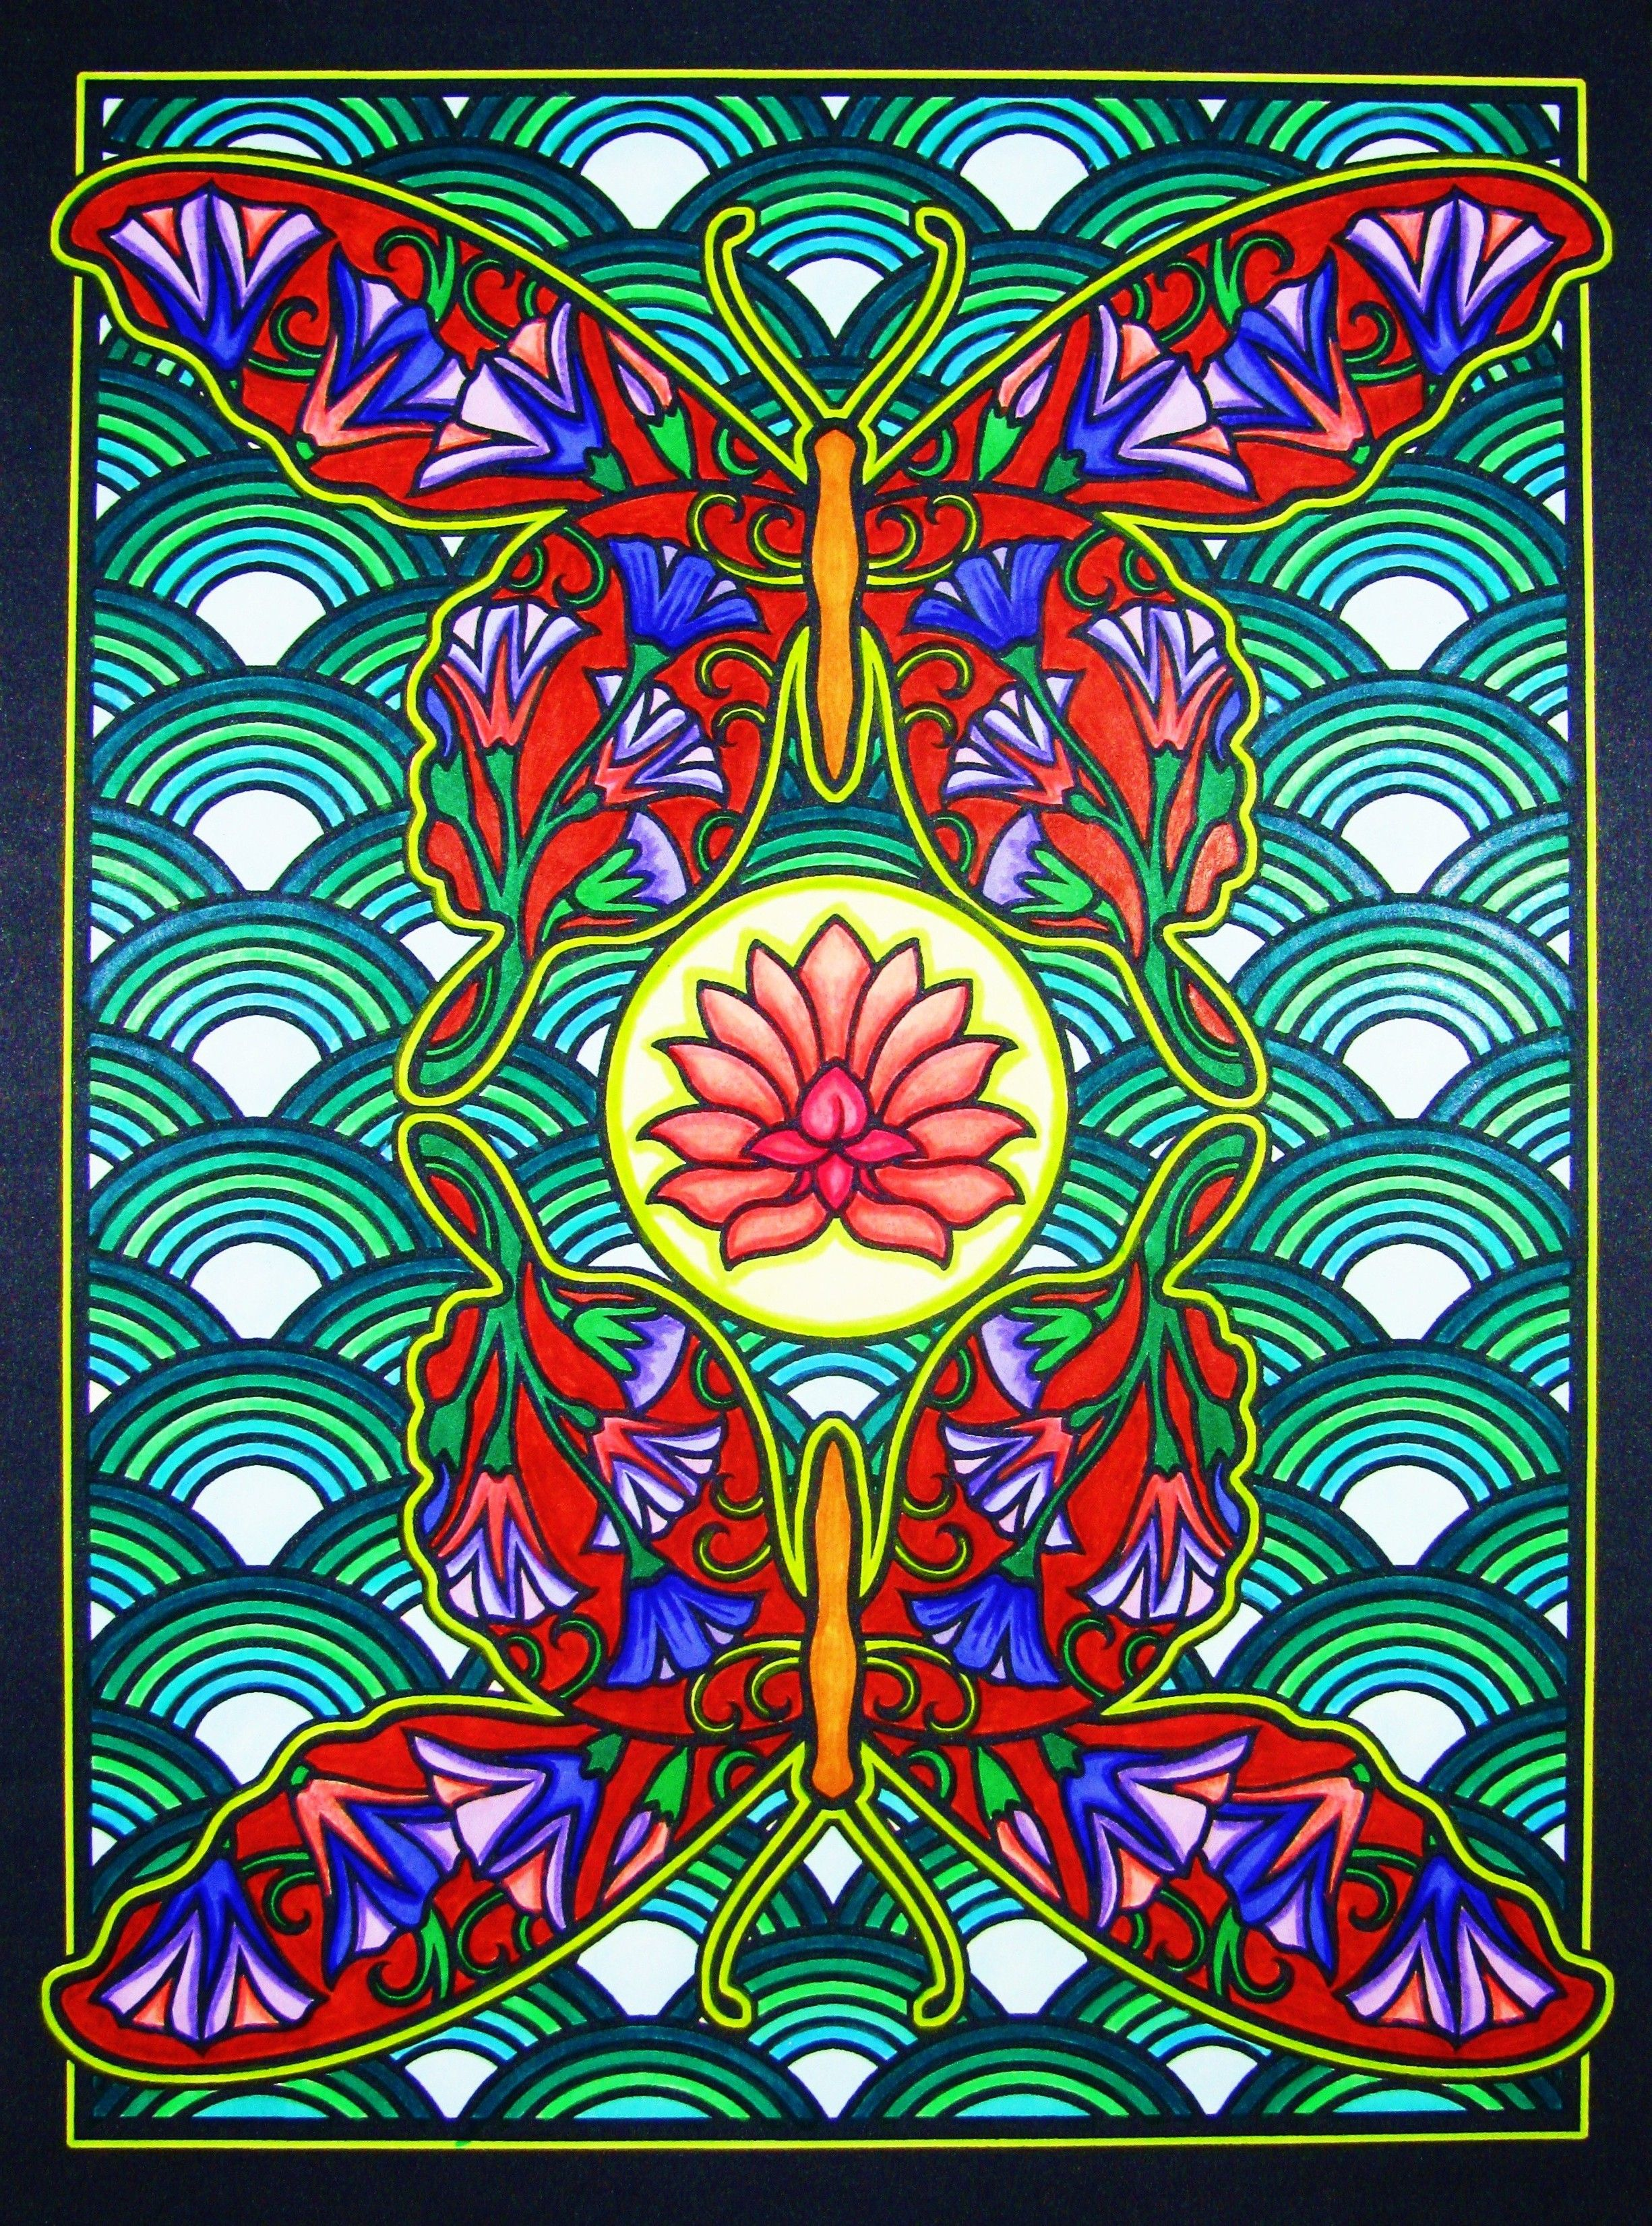 From 'Fanciful butterflies' stained glass coloring book ...